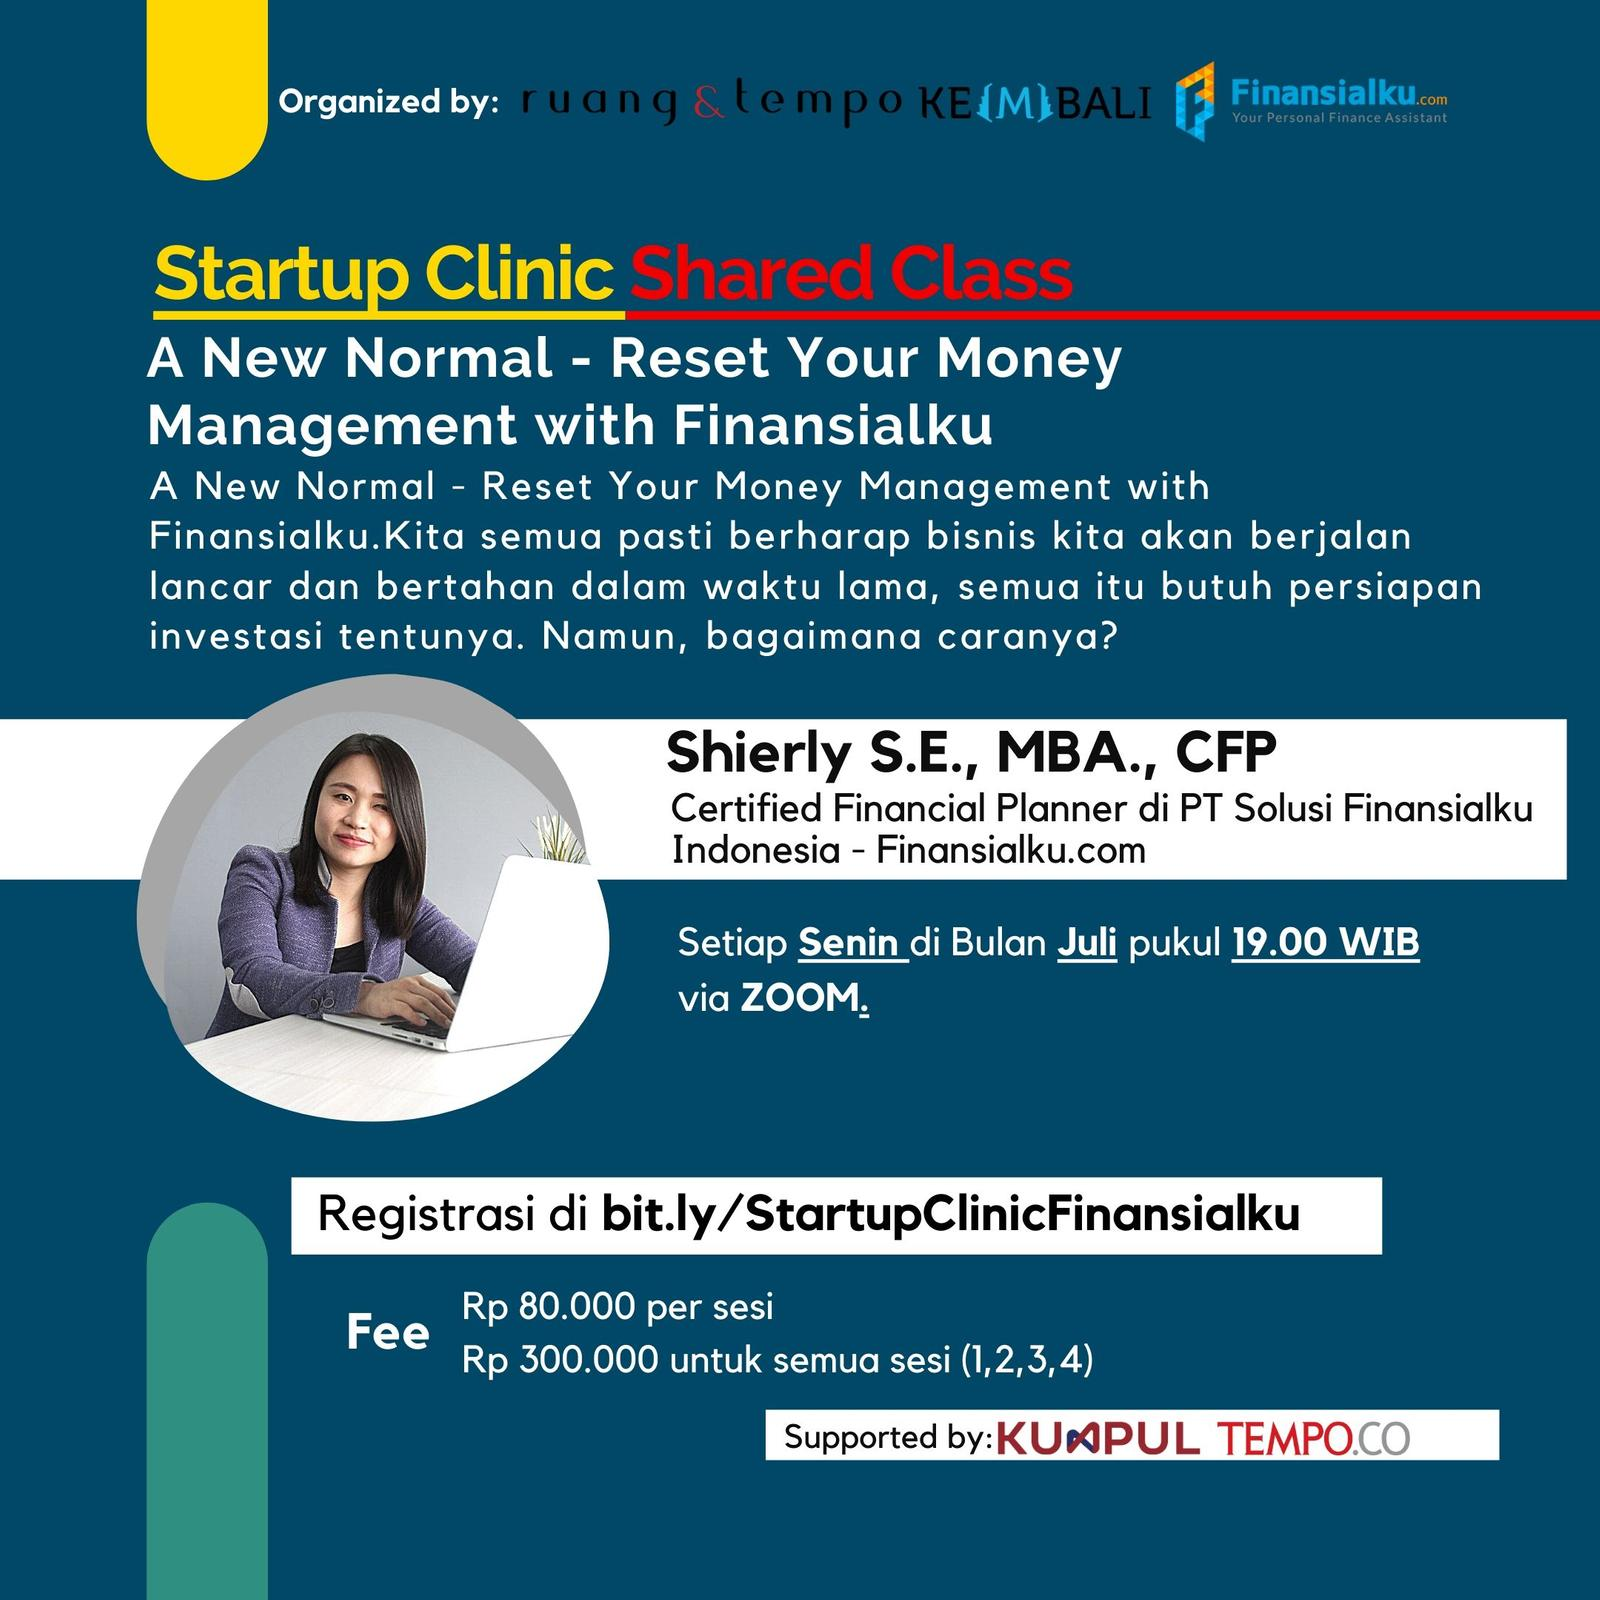 Startup Clinic: A New Normal - Reset Your Money Management with Finansialku